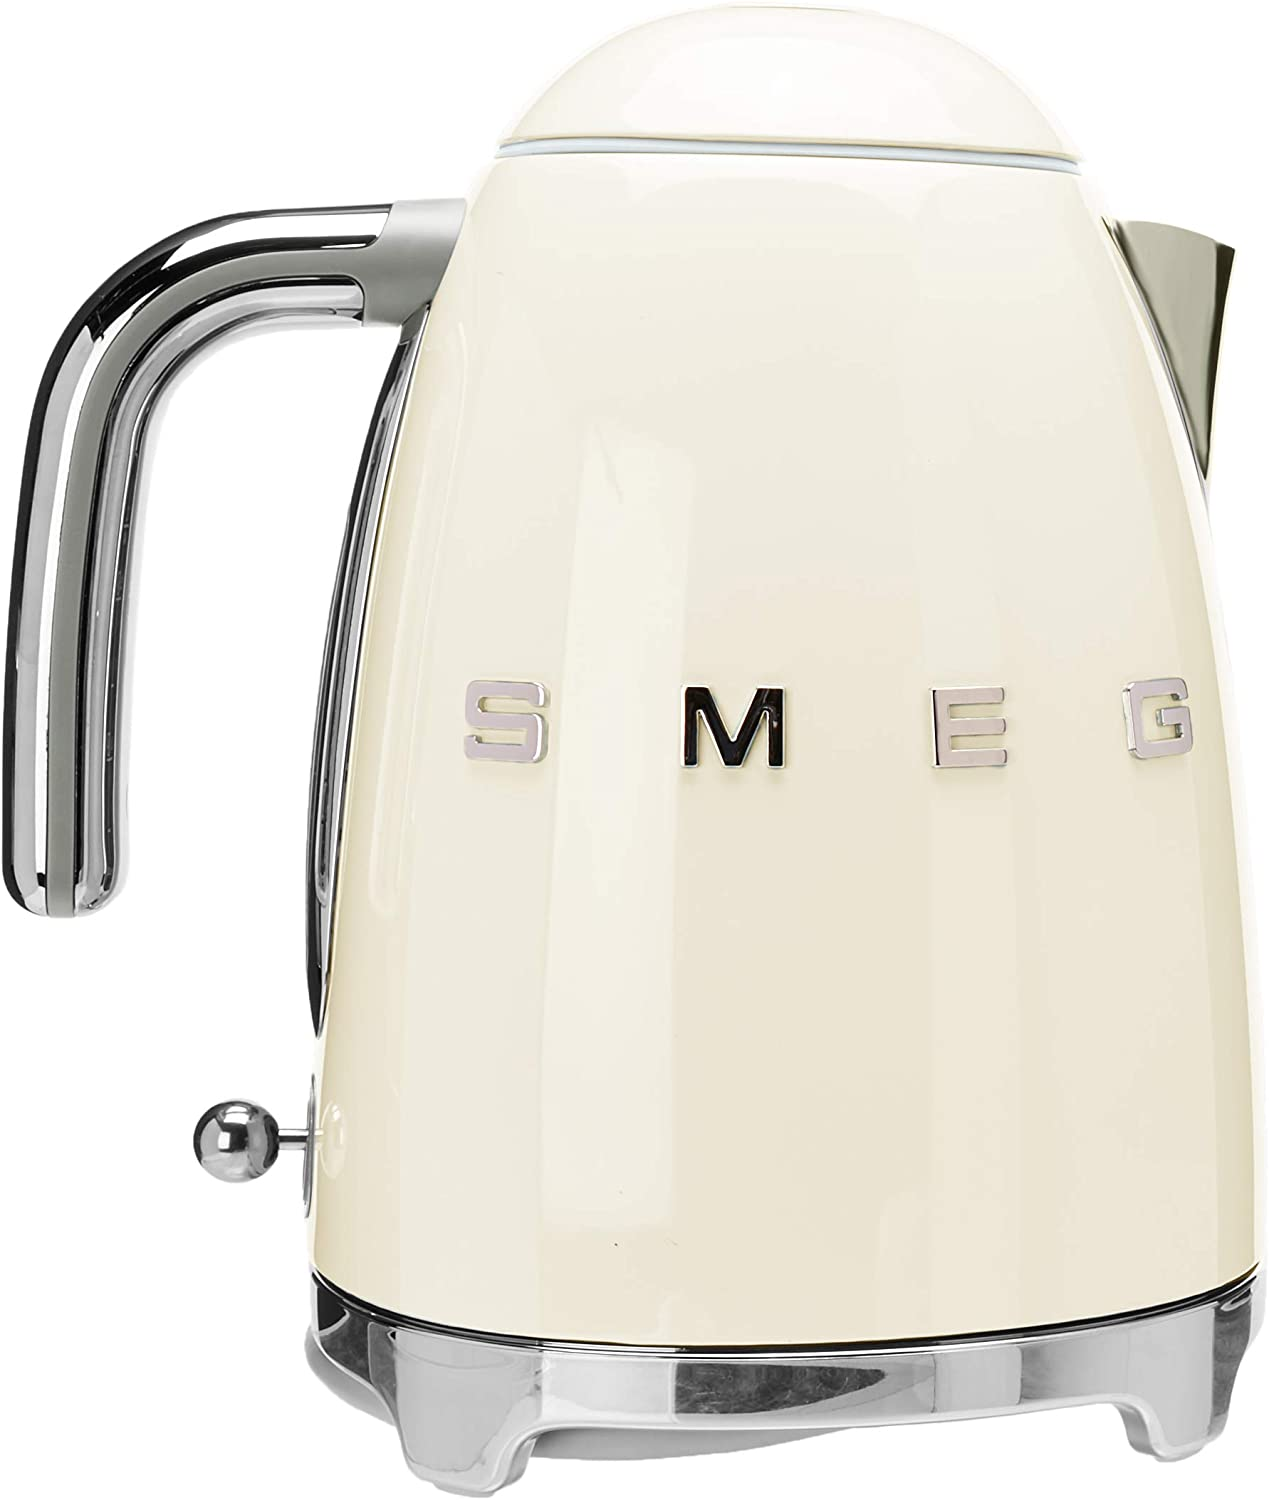 Smeg KLF03CRUS 50 s Retro Style Aesthetic Electric Kettle with Embossed Logo, Cream